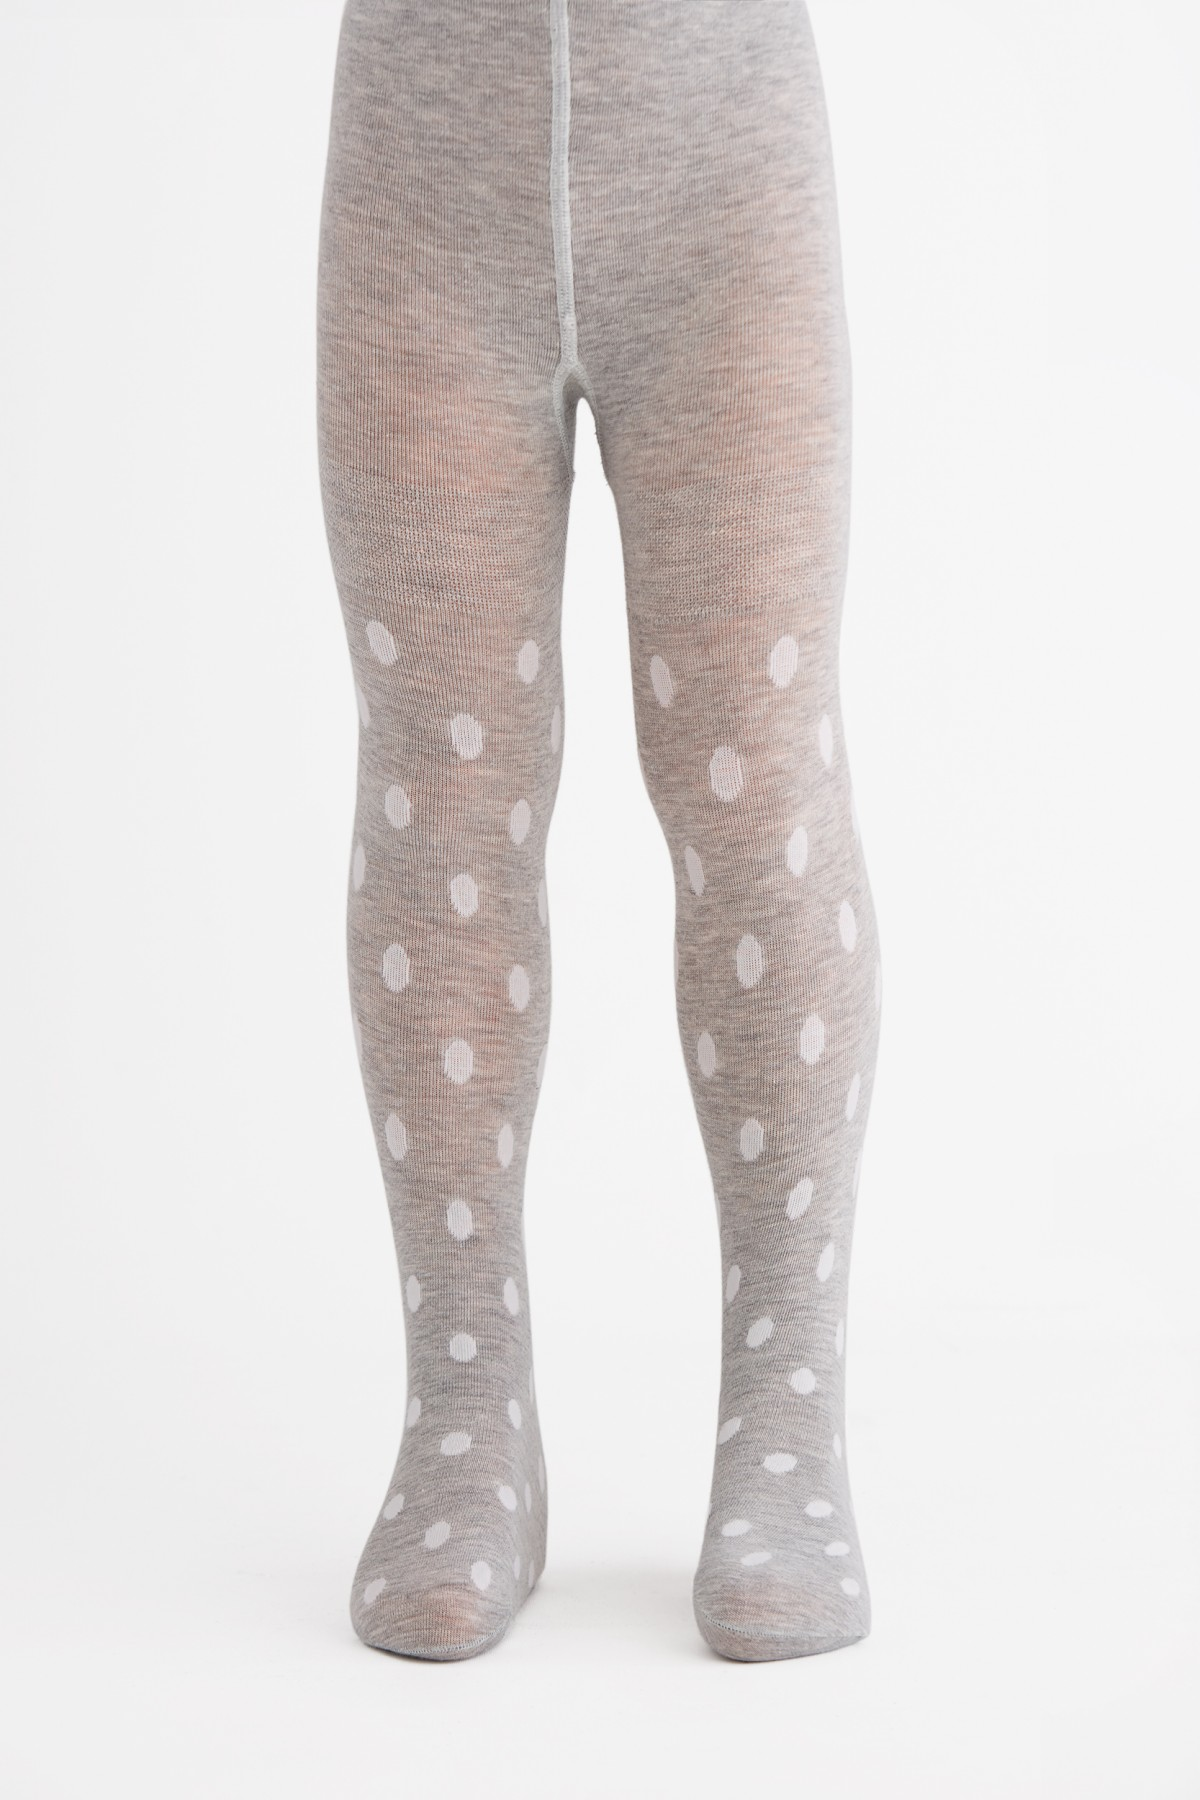 180 DEN PATTERNED COTTON BABY TIGHT